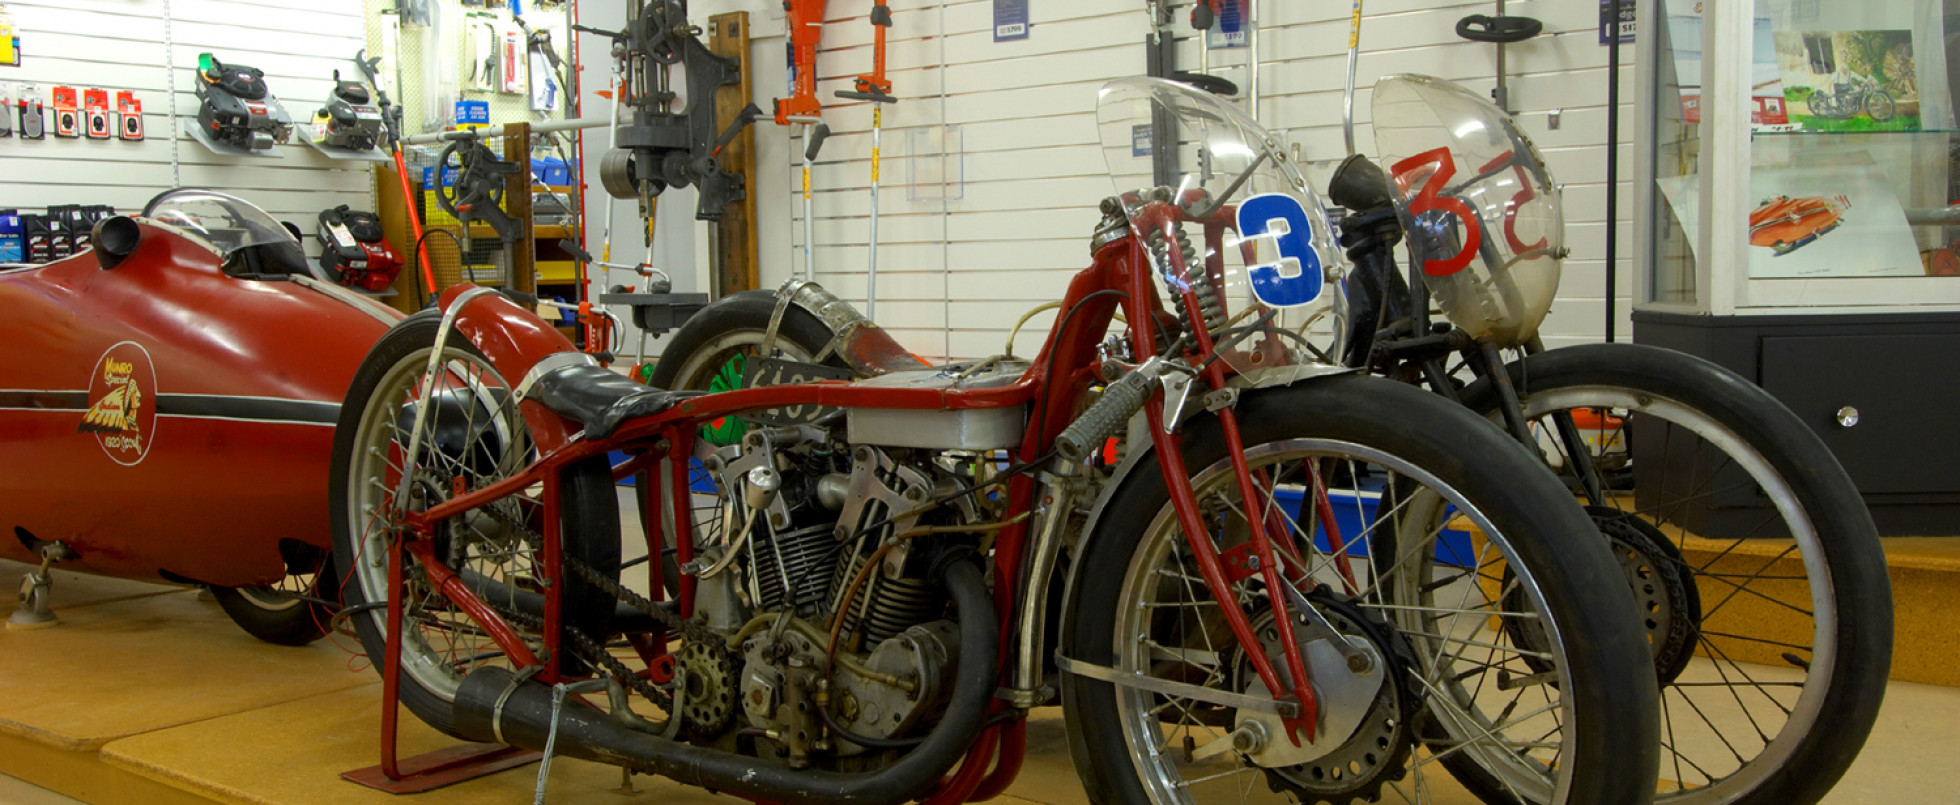 Visit the original 'Munro Special Indian Scout'